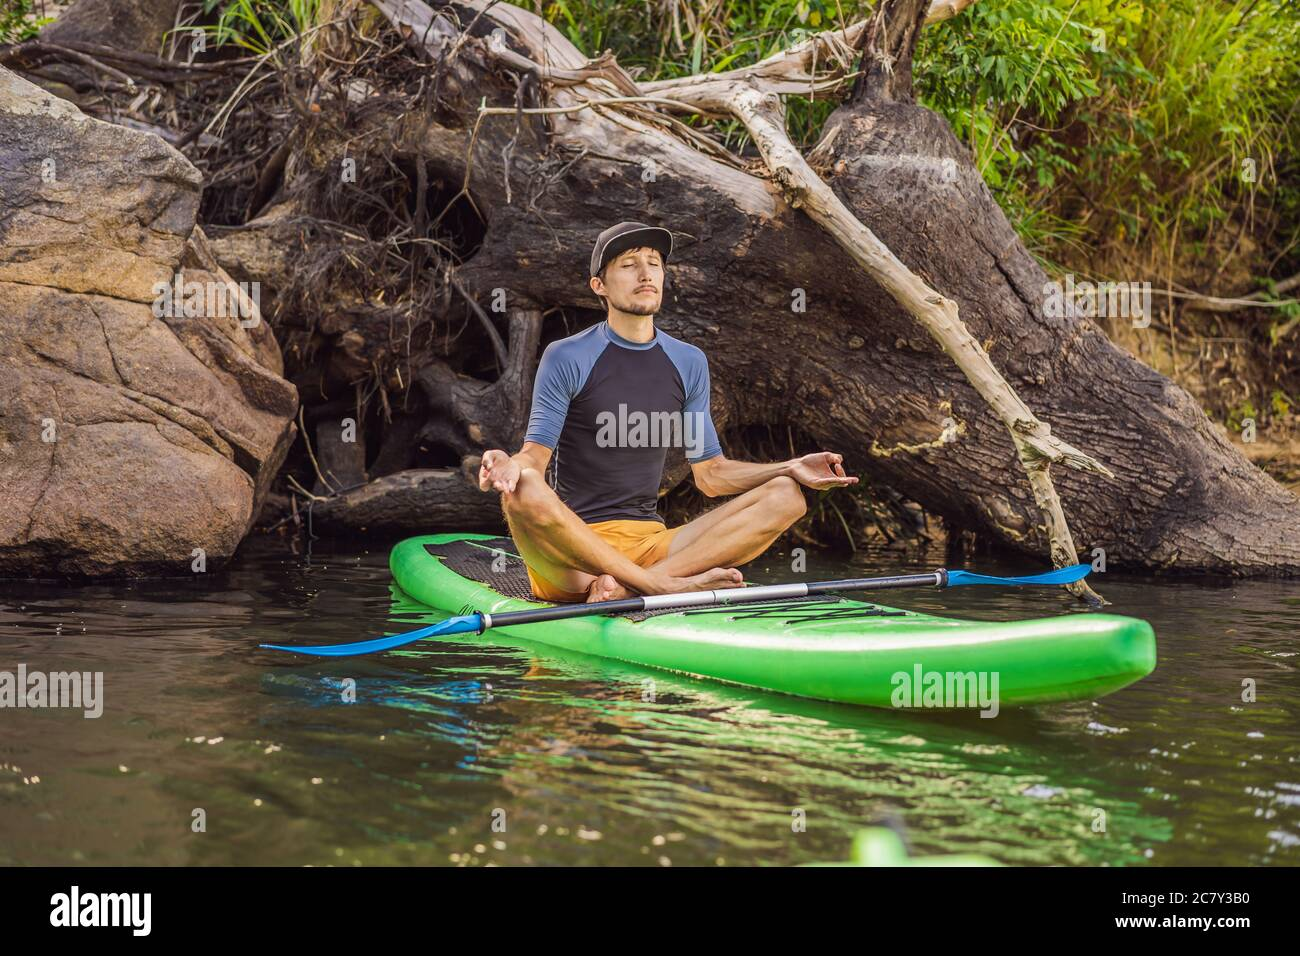 man practicing yoga on a SUP board during sunrise on a large river. Stand up paddle boarding - awesome active recreation in nature Stock Photo